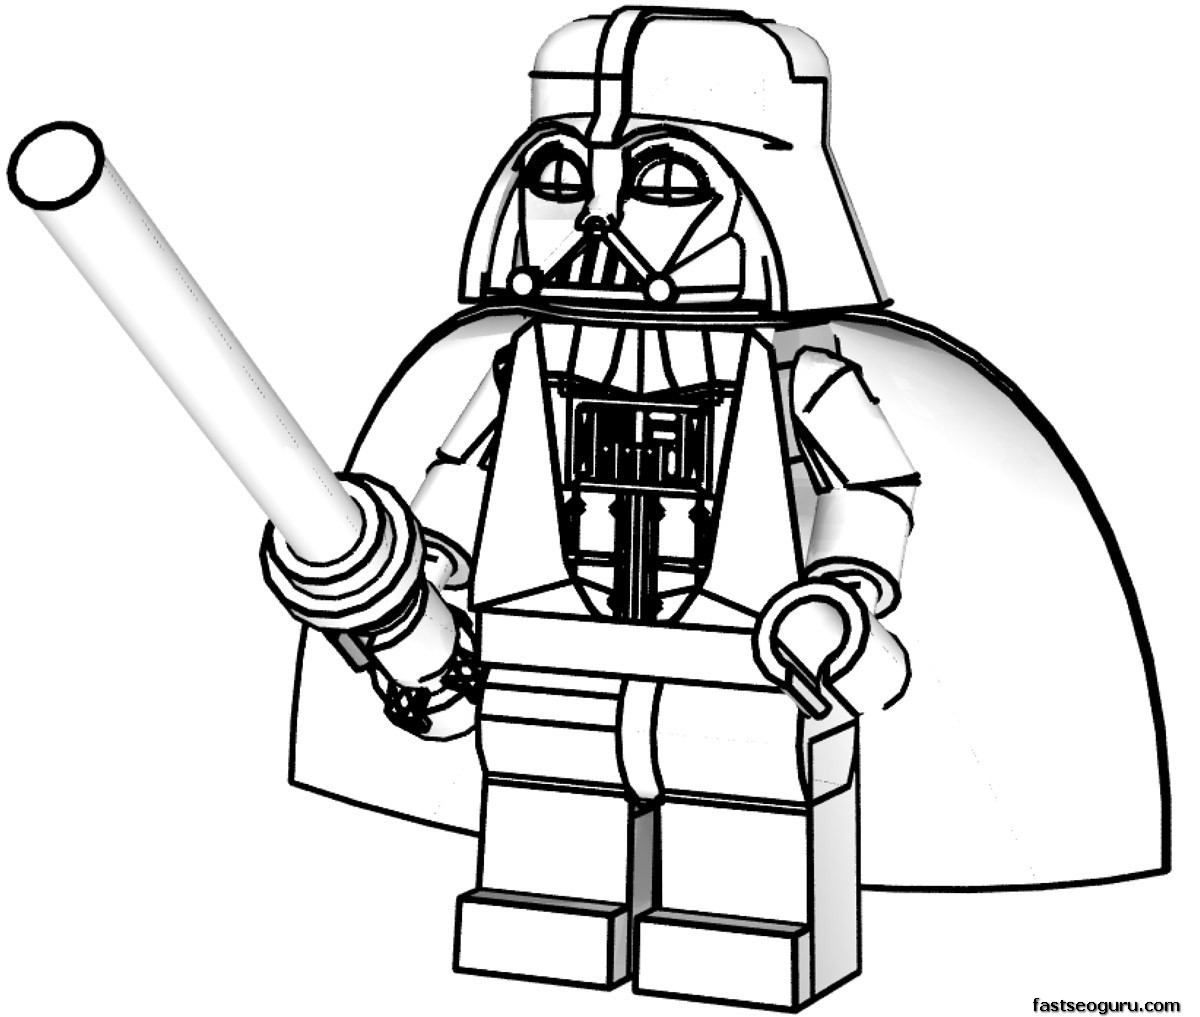 legos star wars coloring pages lego star wars mini at at coloring page wecoloringpagecom pages legos coloring star wars